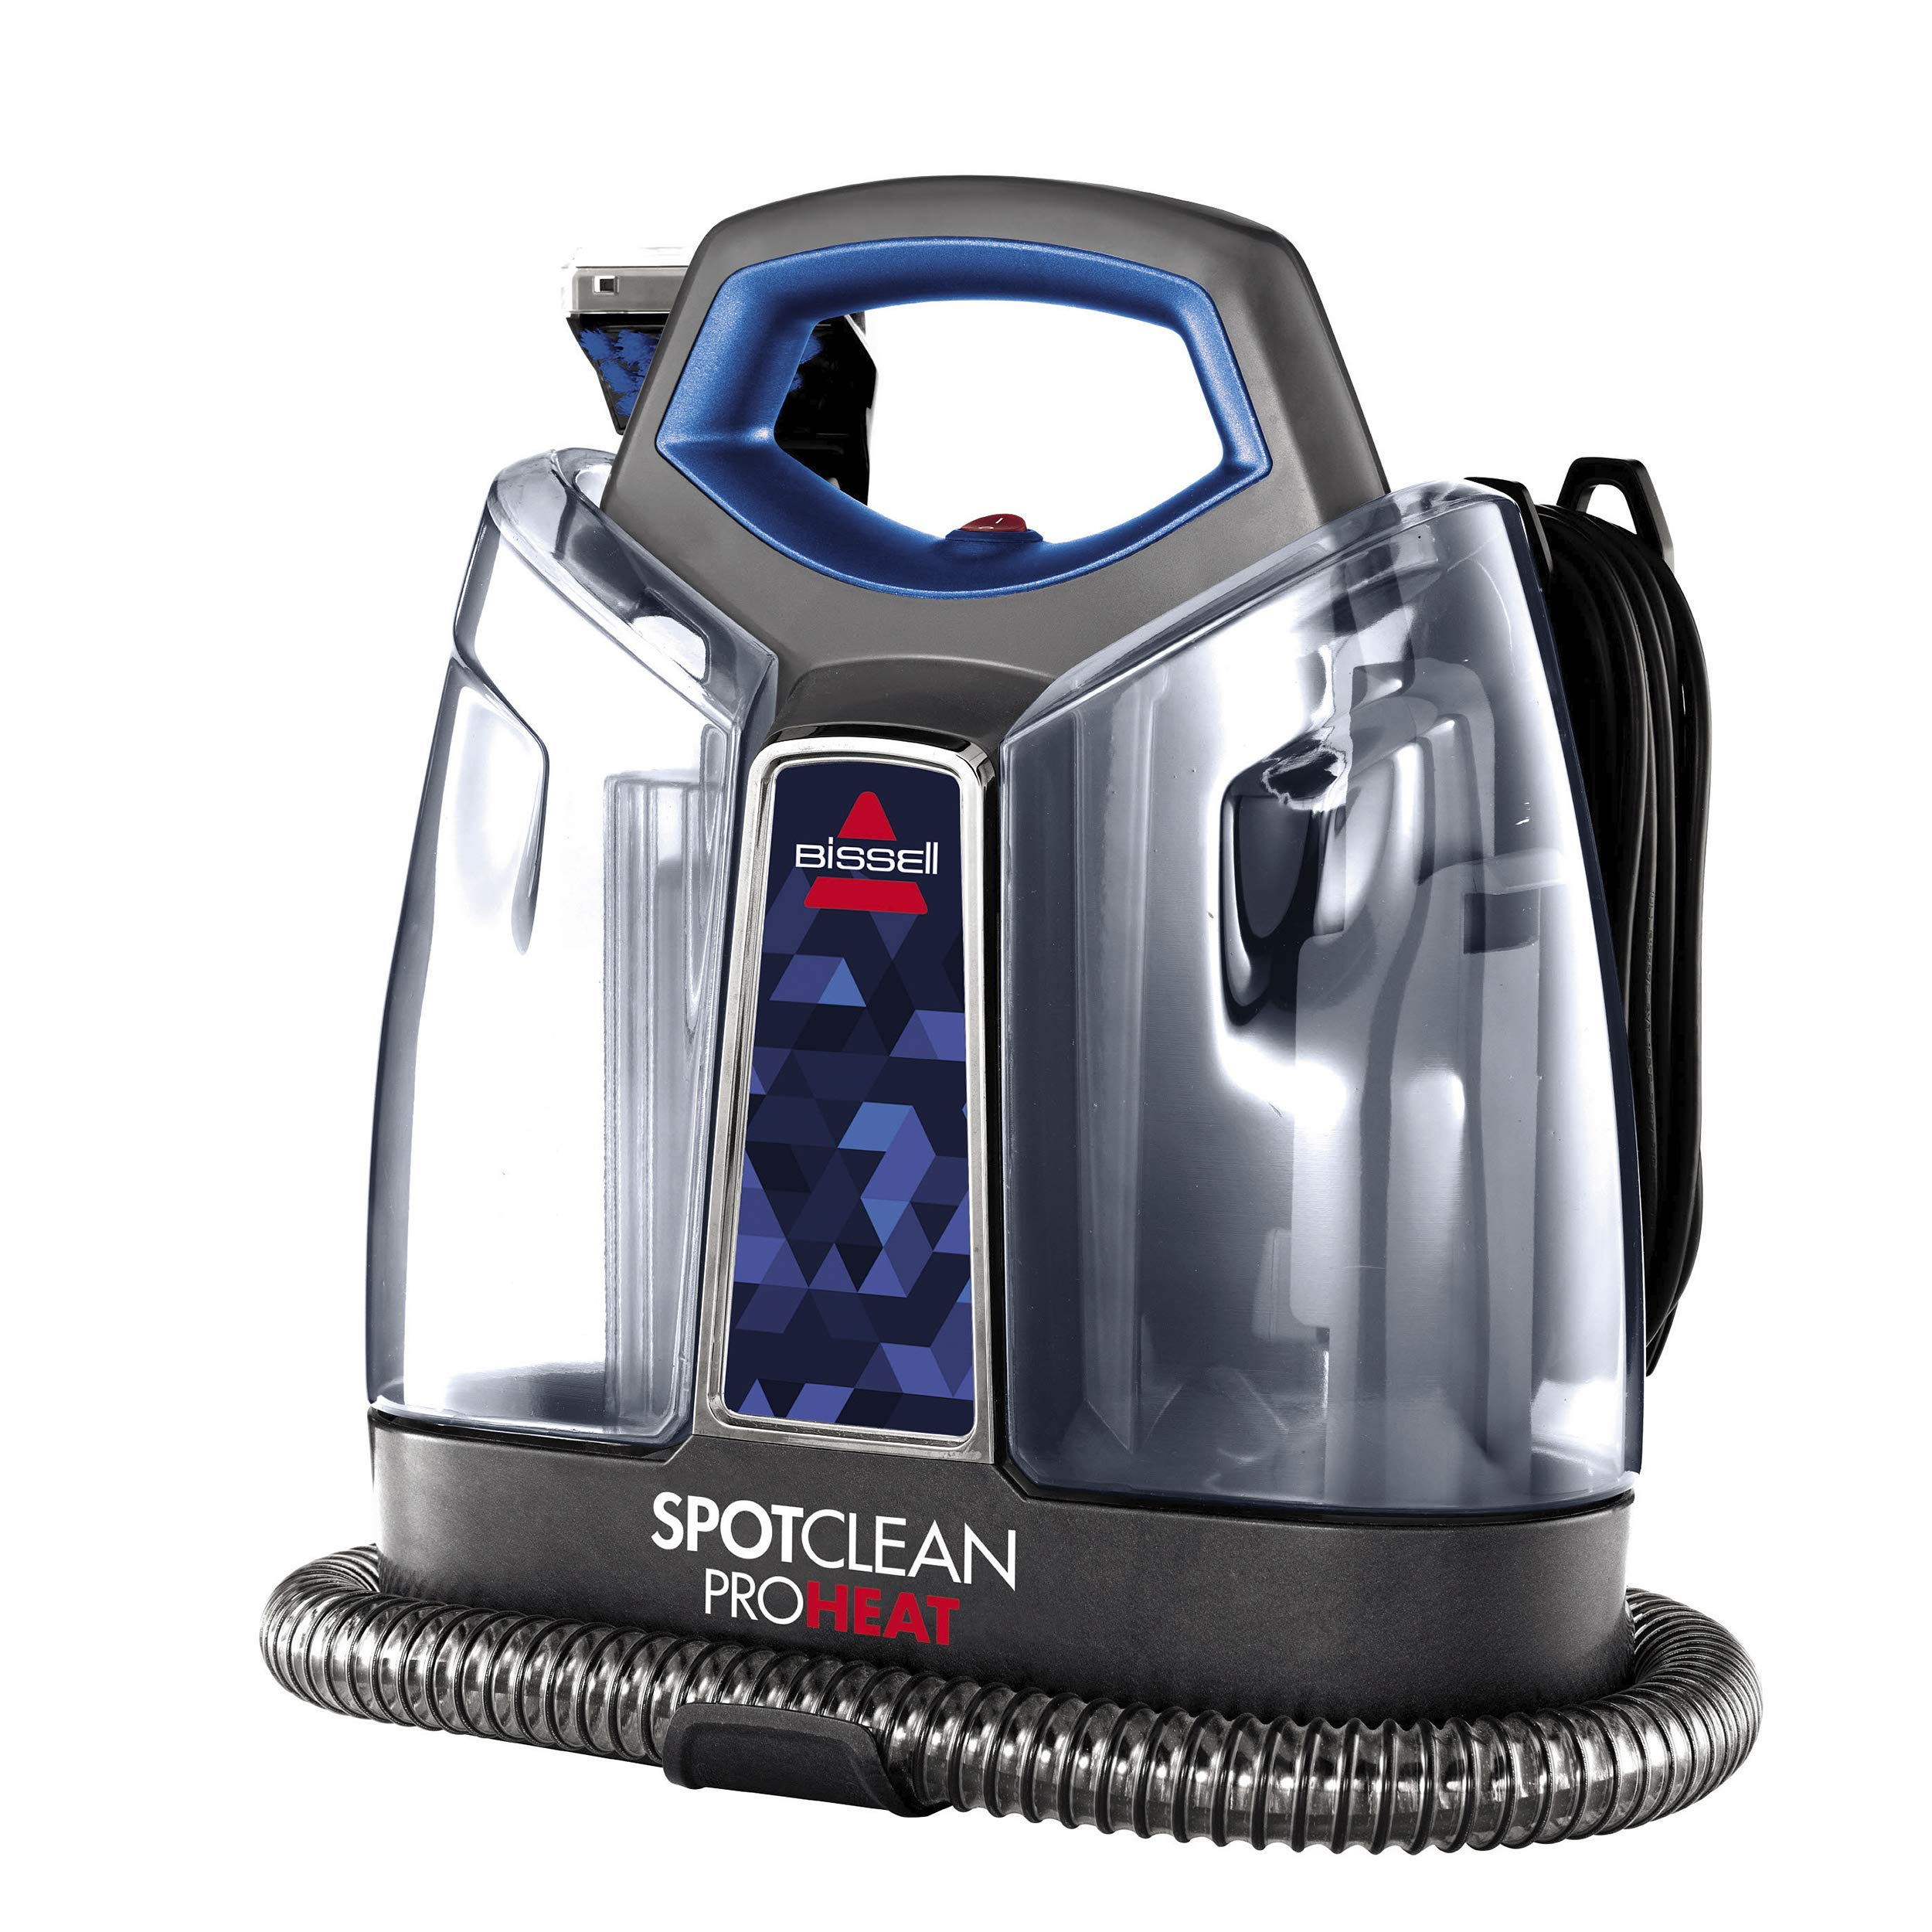 BISSELL SpotClean ProHeat Portable Spot and Stain Carpet Cleaner, 2694, Blue (Renewed)